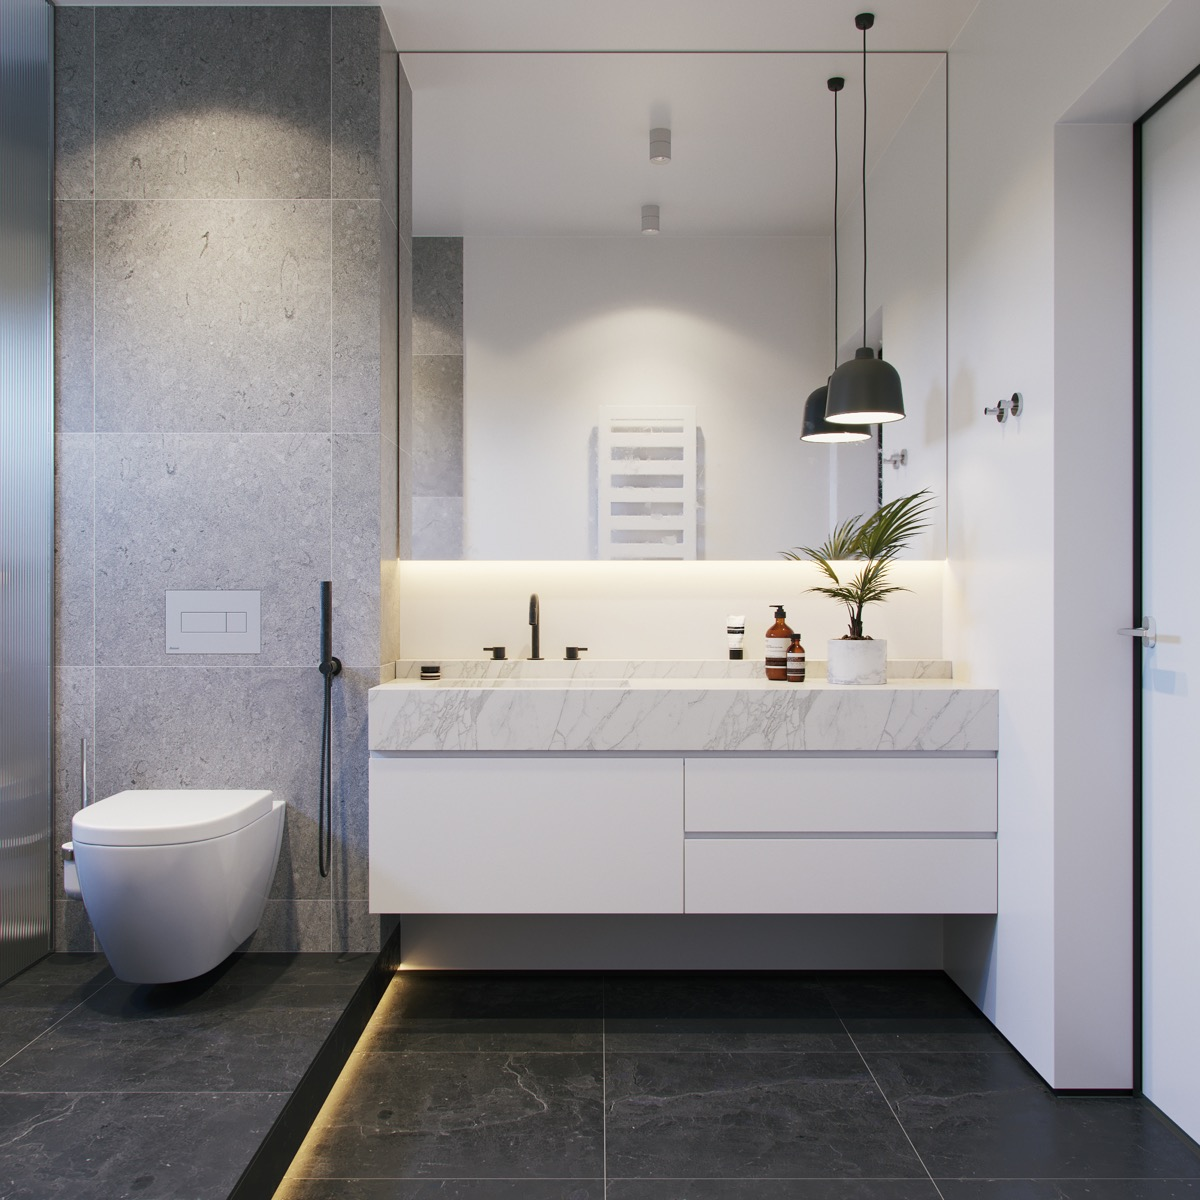 Bathroom Design Ideas: 36 Modern Grey & White Bathrooms That Relax Mind Body & Soul